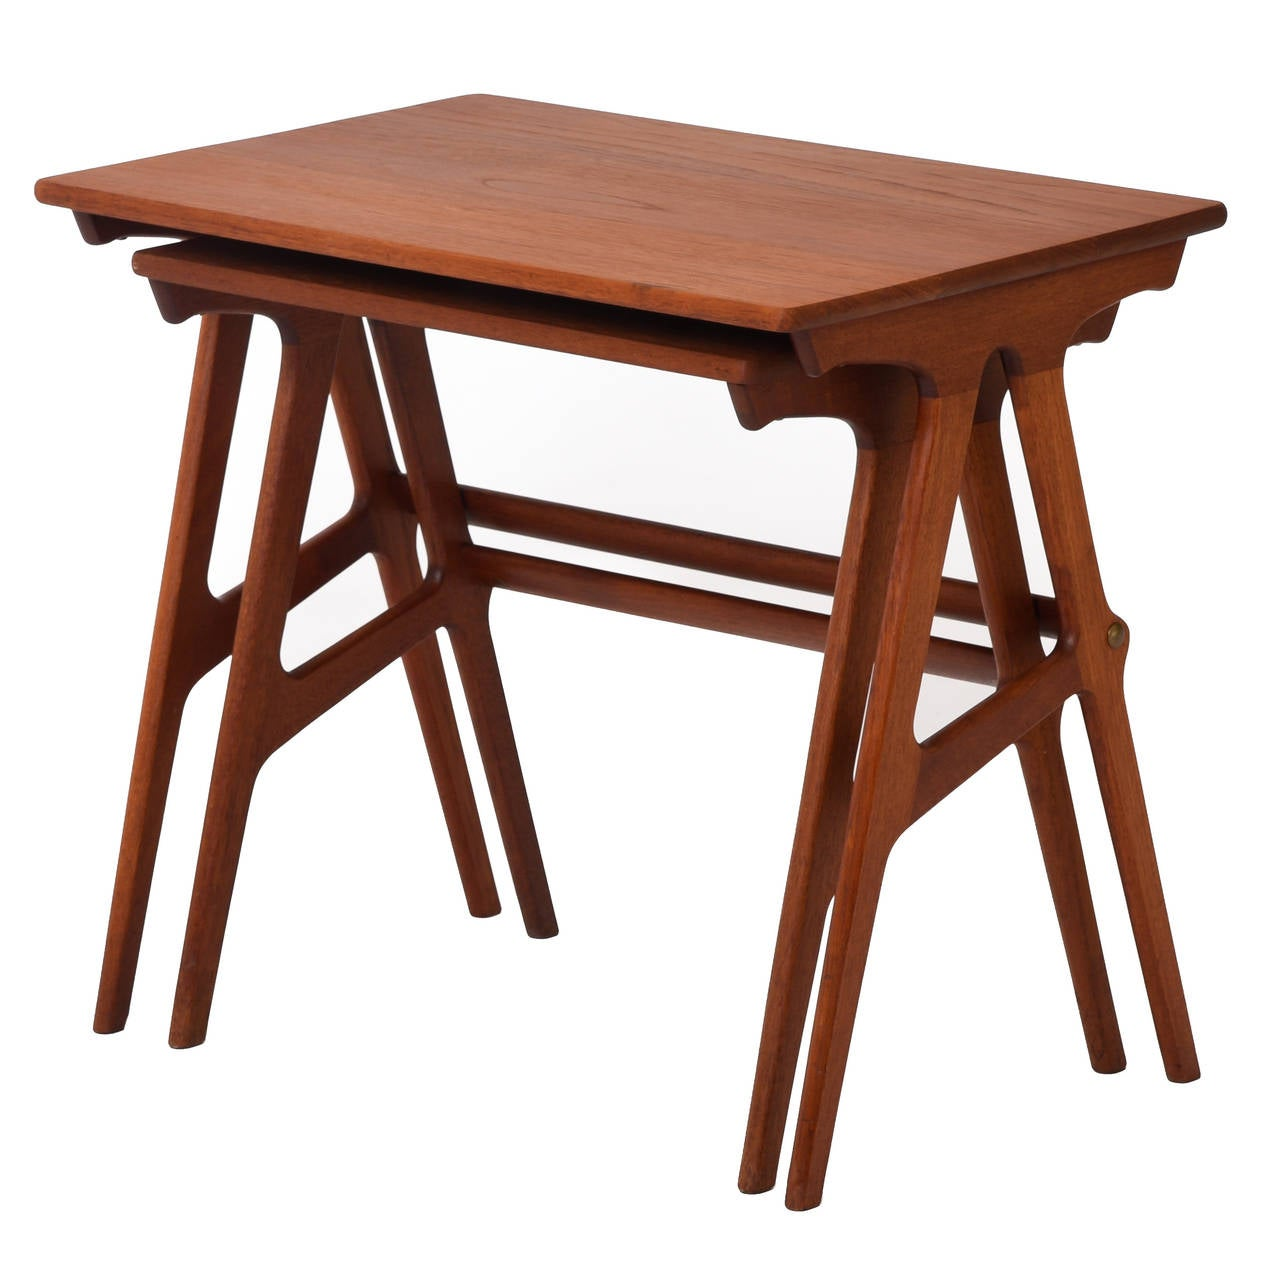 Teak Nesting Tables ~ Danish modern teak nesting tables set of two at stdibs